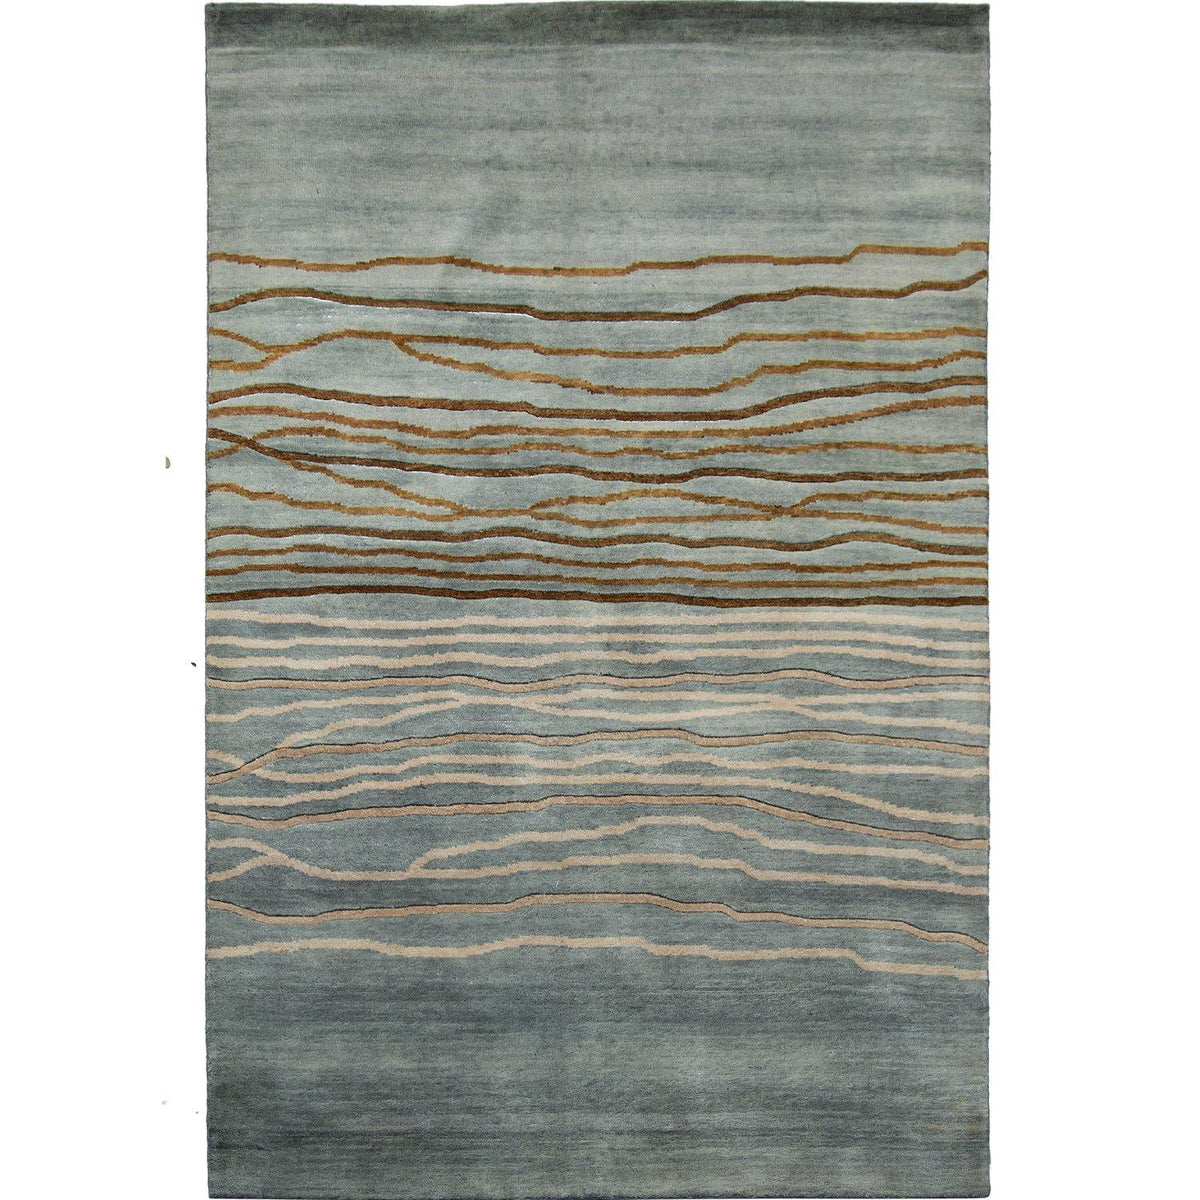 Contemporary Hand-knotted NZ Wool Rug 174cm x 272cm Persian-Rug | House-of-Haghi | NewMarket | Auckland | NZ | Handmade Persian Rugs | Hand Knotted Persian Rugs